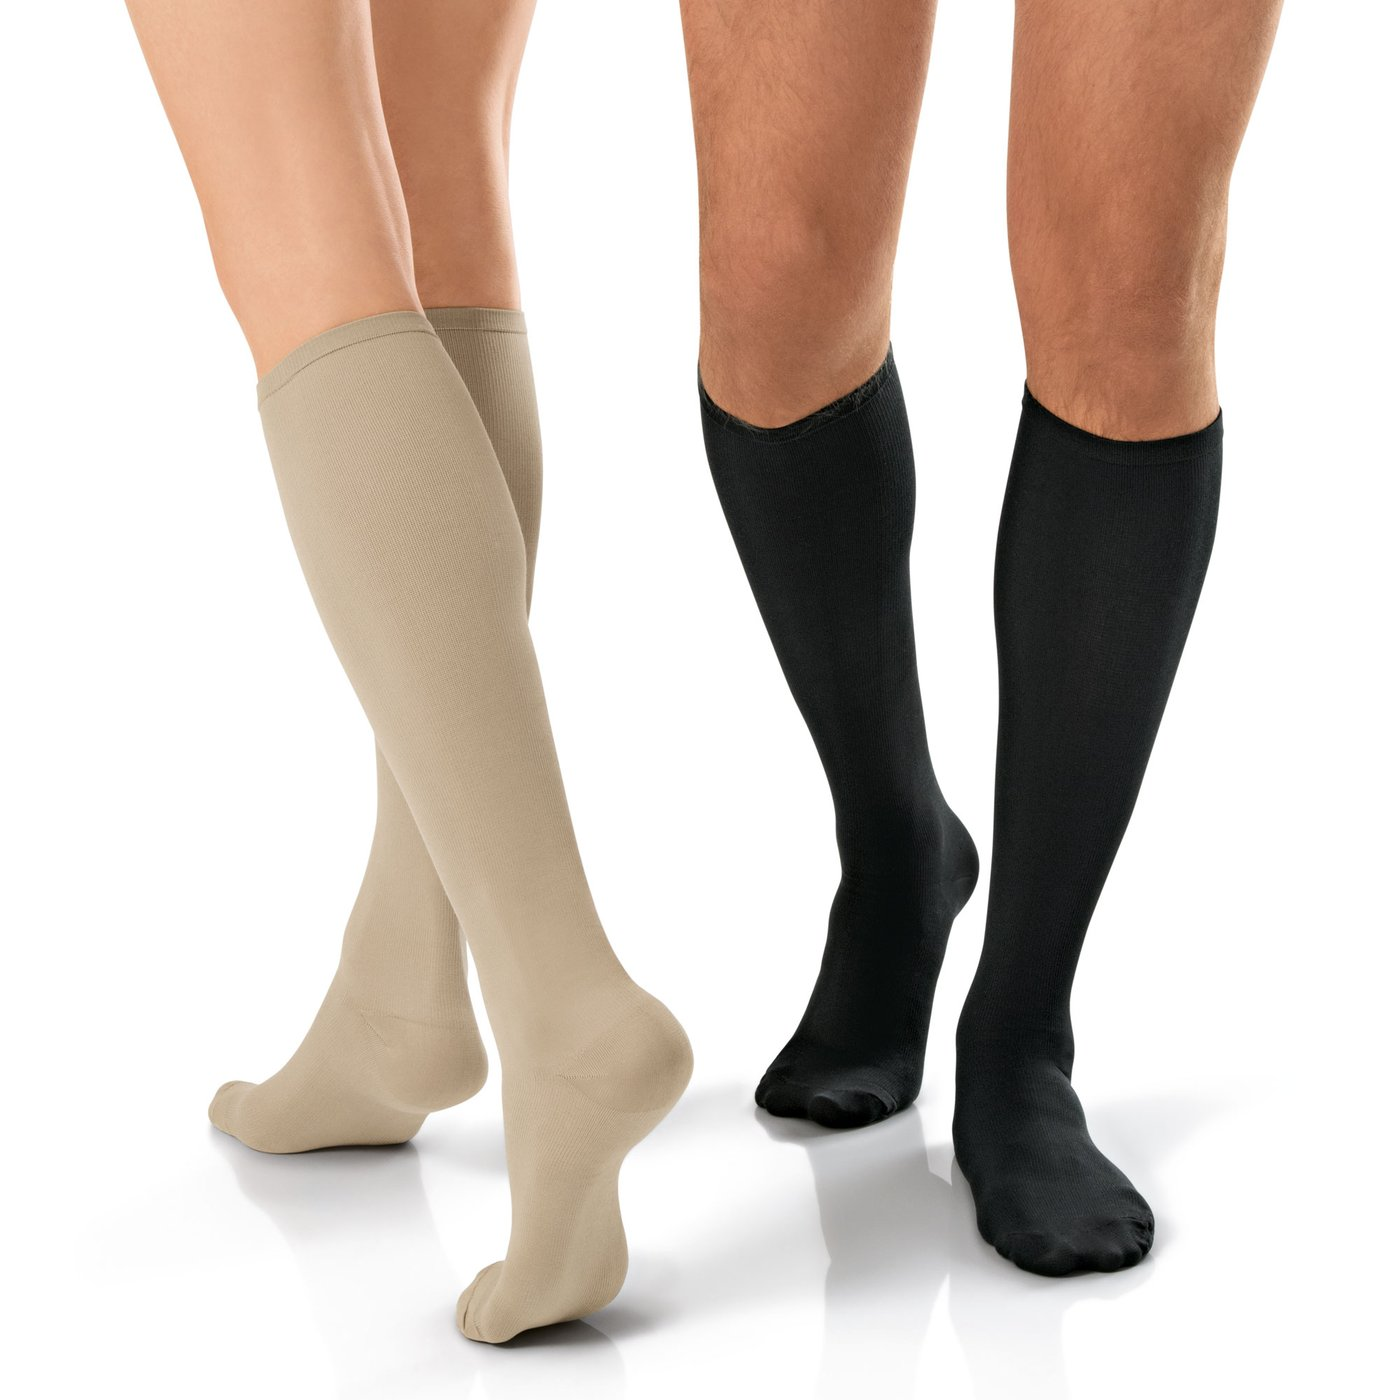 image of people wearing travel socks